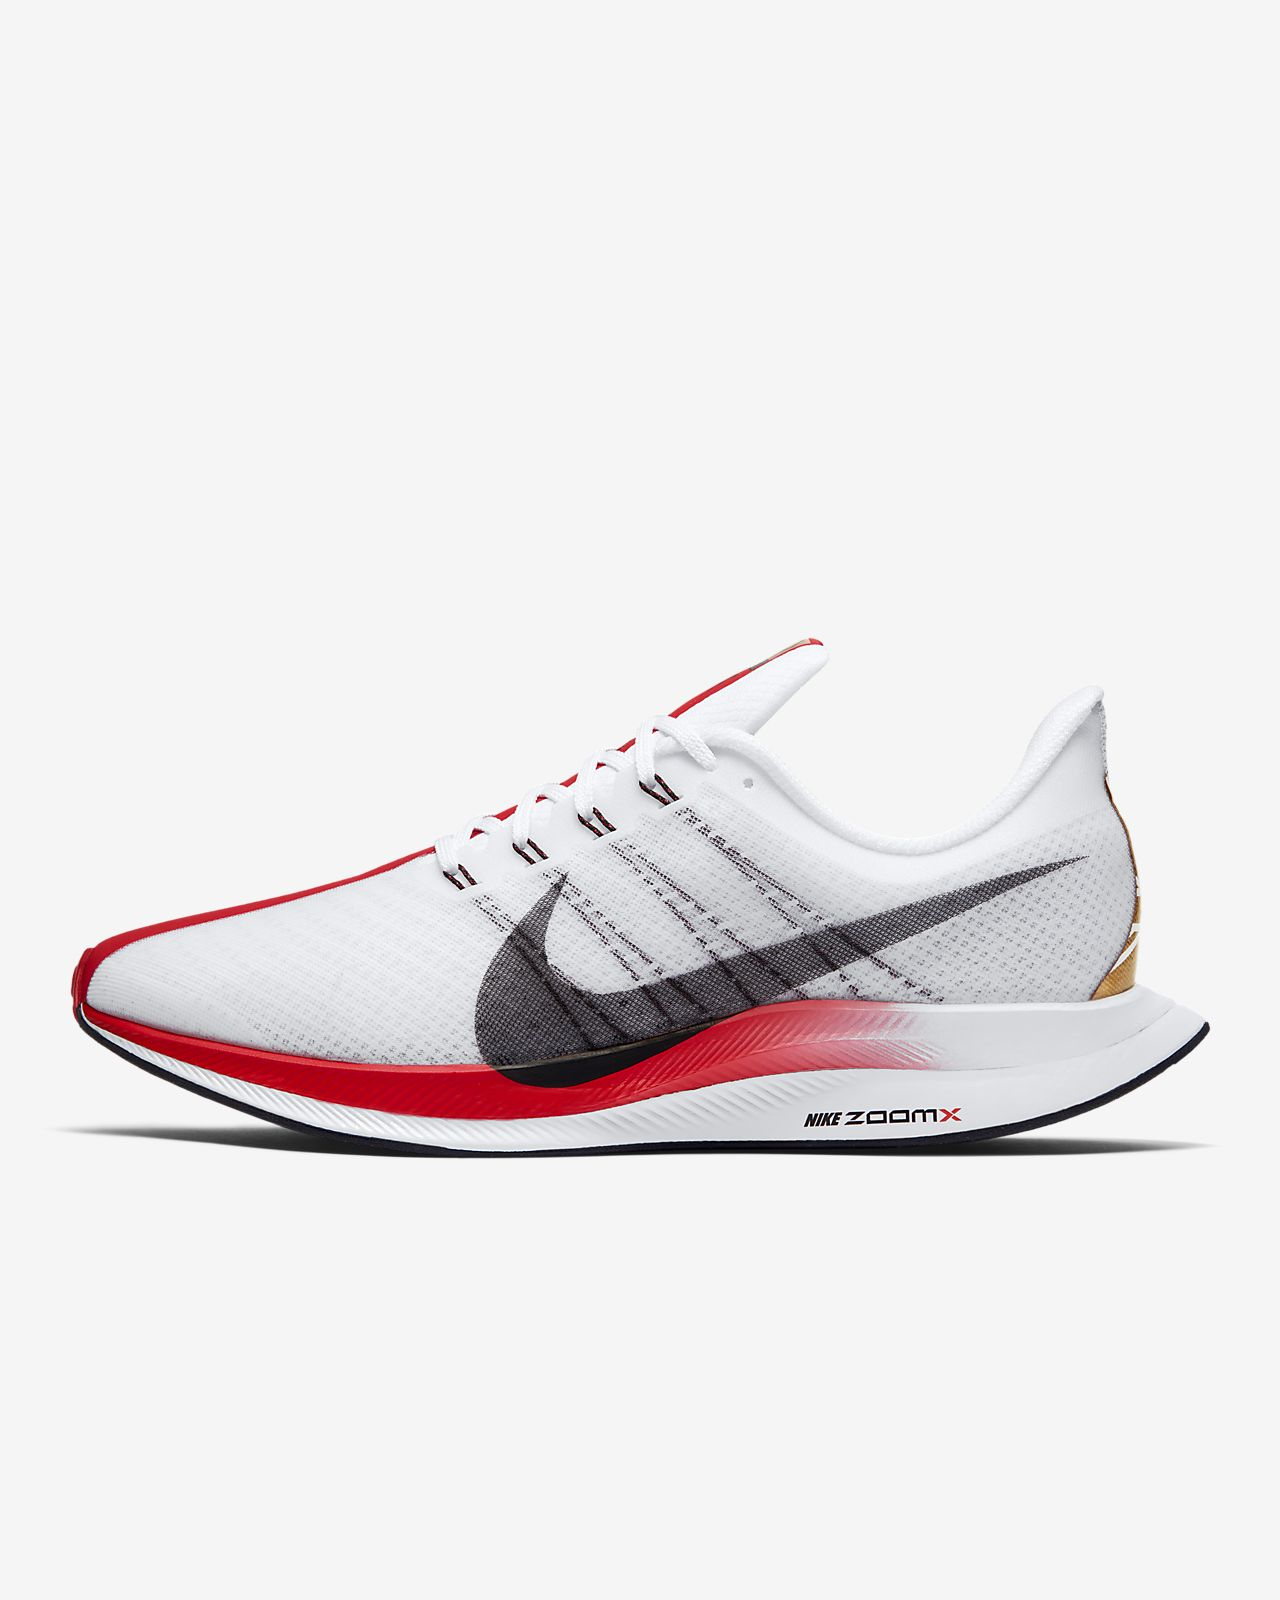 32c5c9eef9 Nike Zoom Pegasus 35 Turbo Running Shoe. Nike.com AT